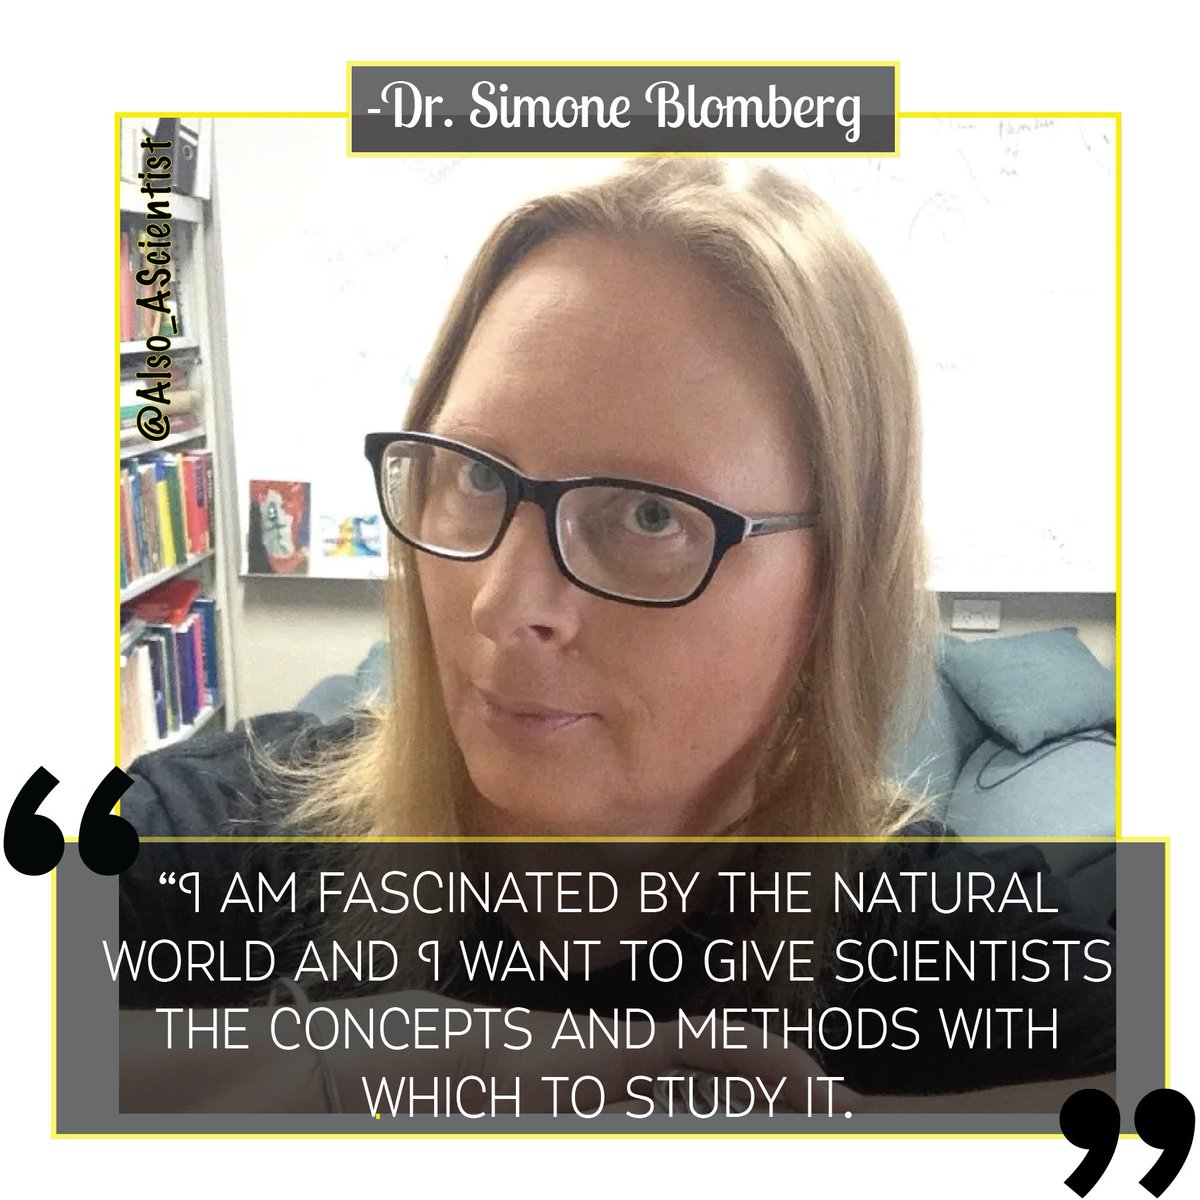 Meet @simoneb66, whose early love of lizards 🦎 led to a PhD in ecology! Now at the U. of Queenland🇦🇺 she develops mathematical models to describe macroevolution. You can also find her strumming bass guitar or meditating! #WomenInSTEM #QueerInSTEM ✨ow.ly/RXJd50yk6OV ✨